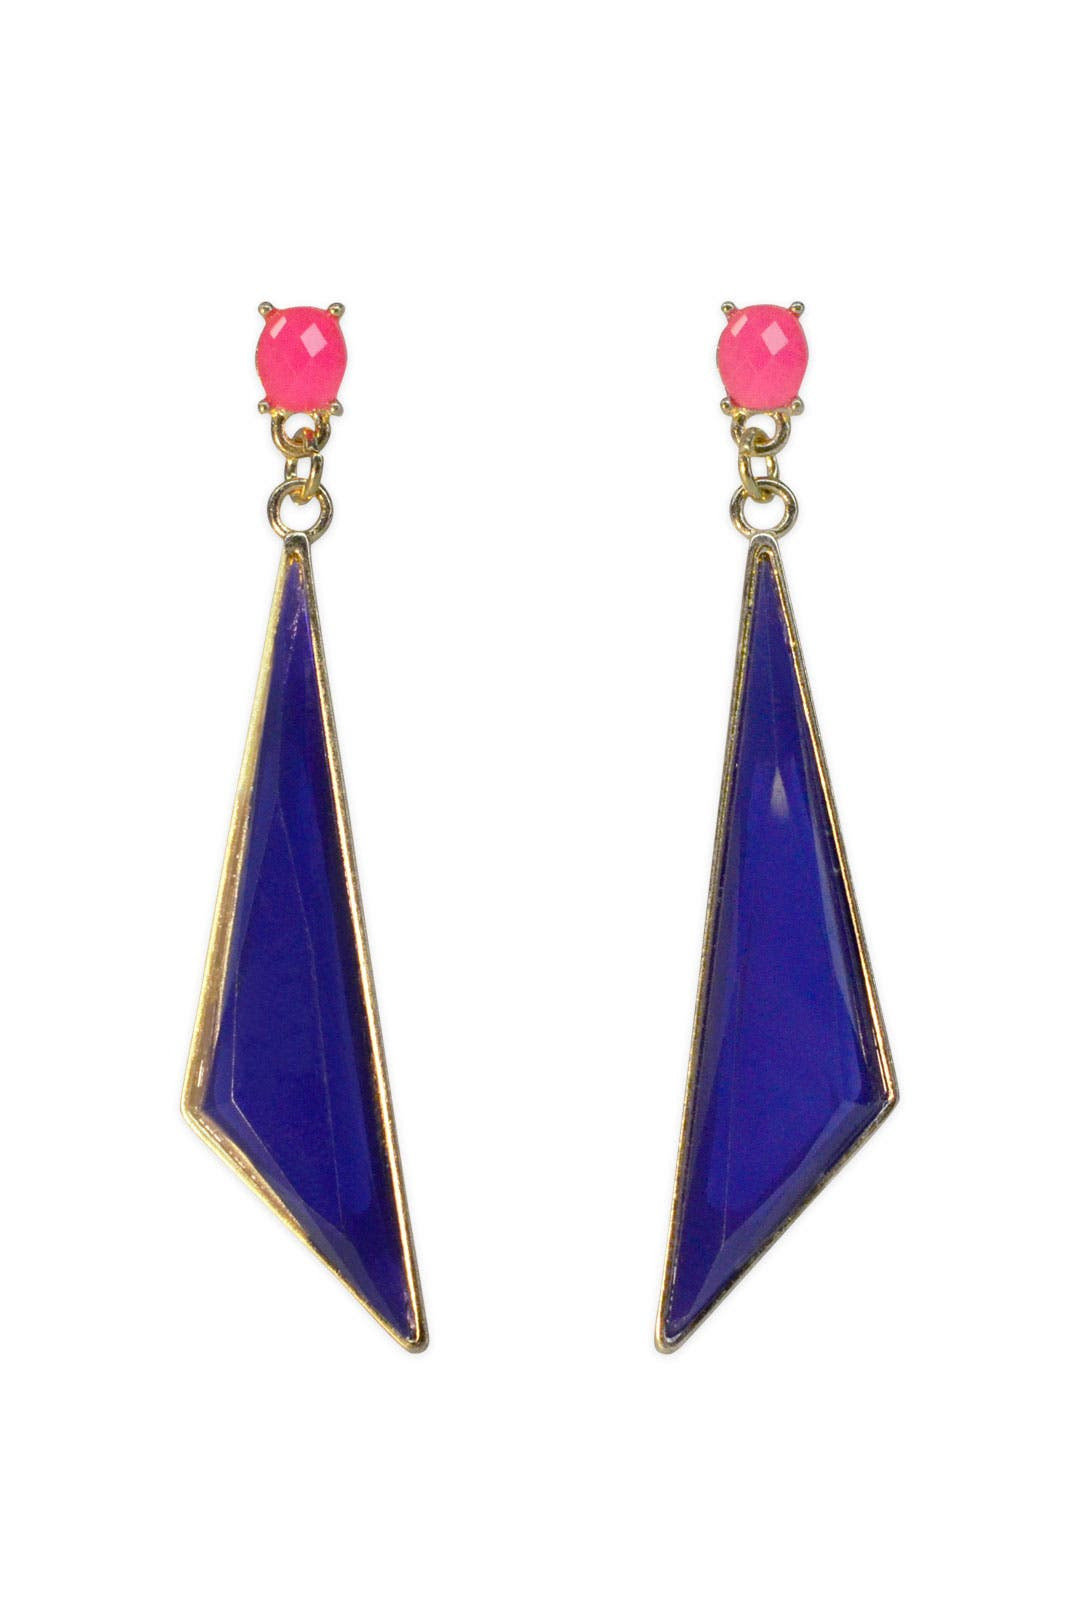 Pink & Blue Geo Drops by Cinder & Charm